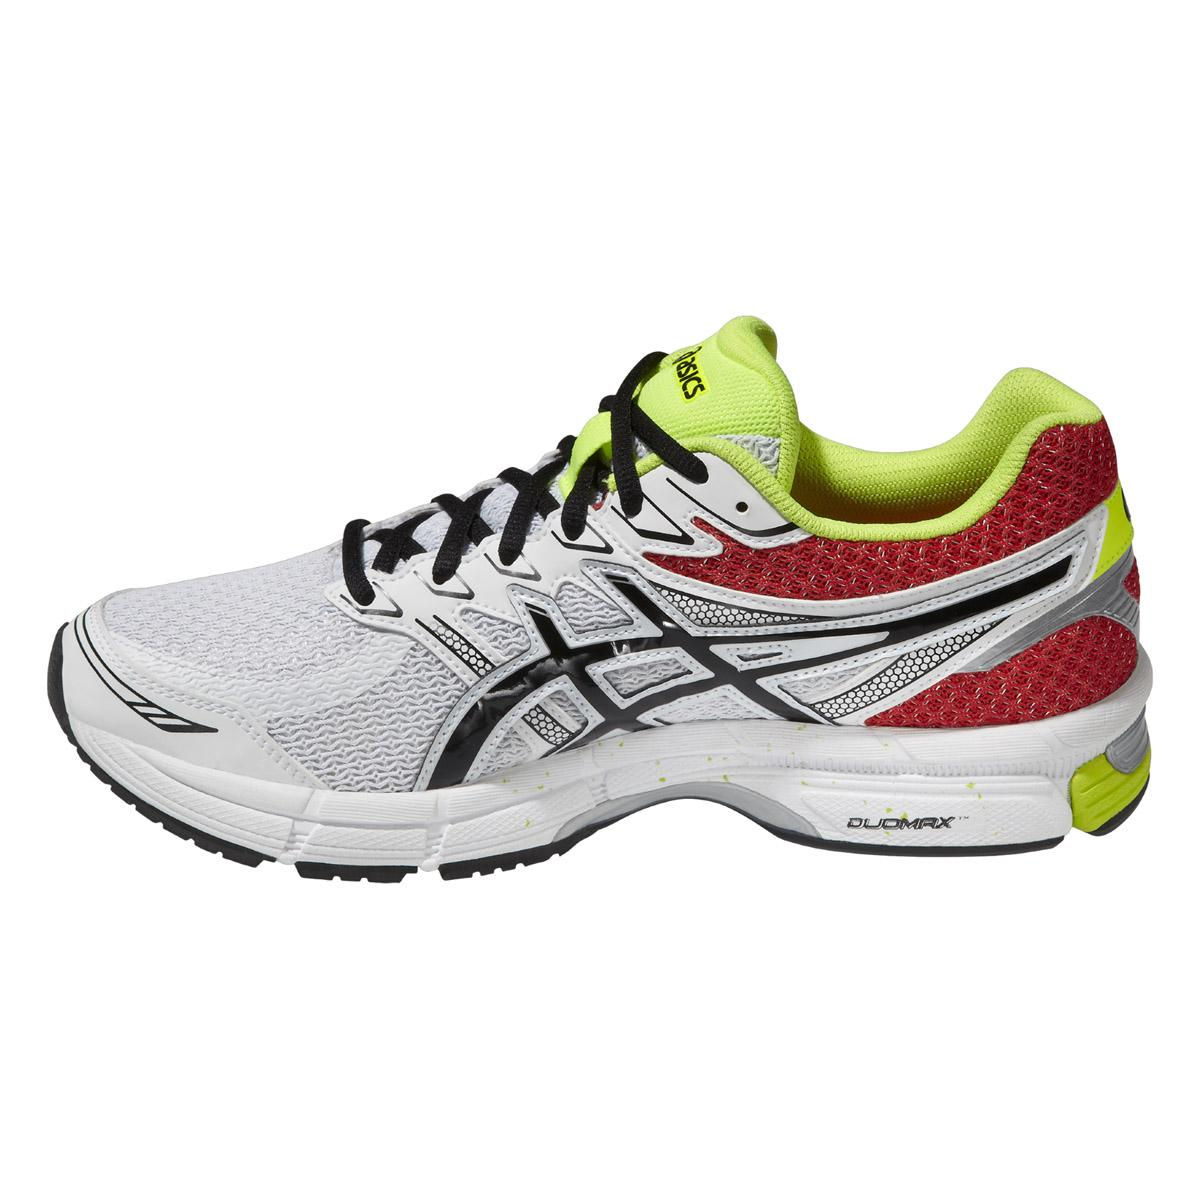 Asics Mens GEL-Phoenix 6 Running Shoes - White/Red